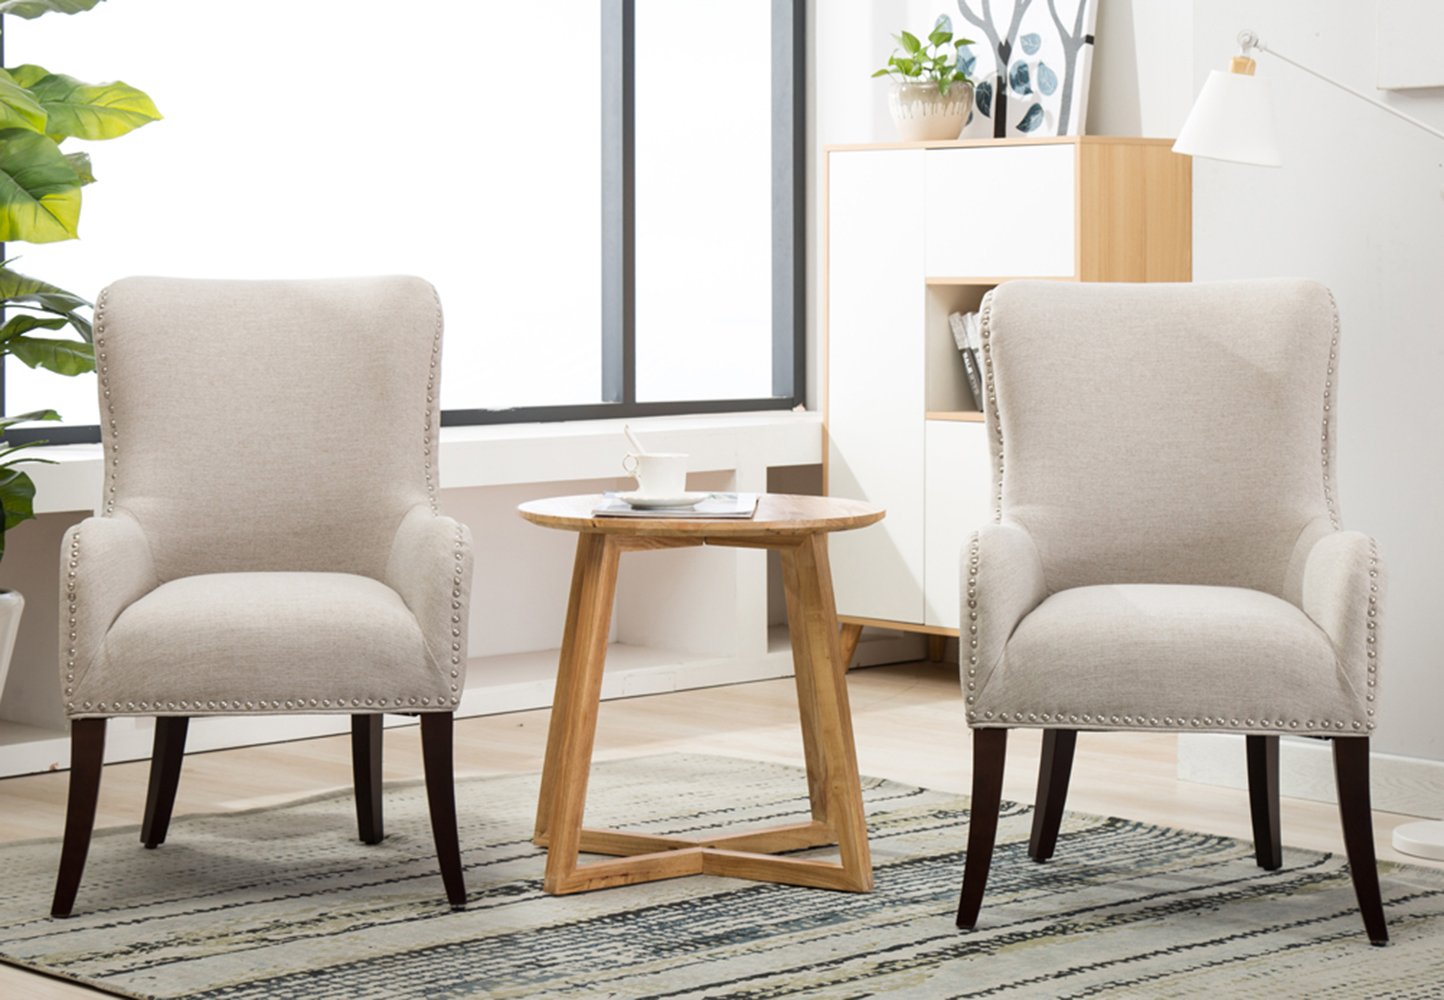 Accent Chair Modern Living Room Chairs Set Sofa Chairs Pack of 2